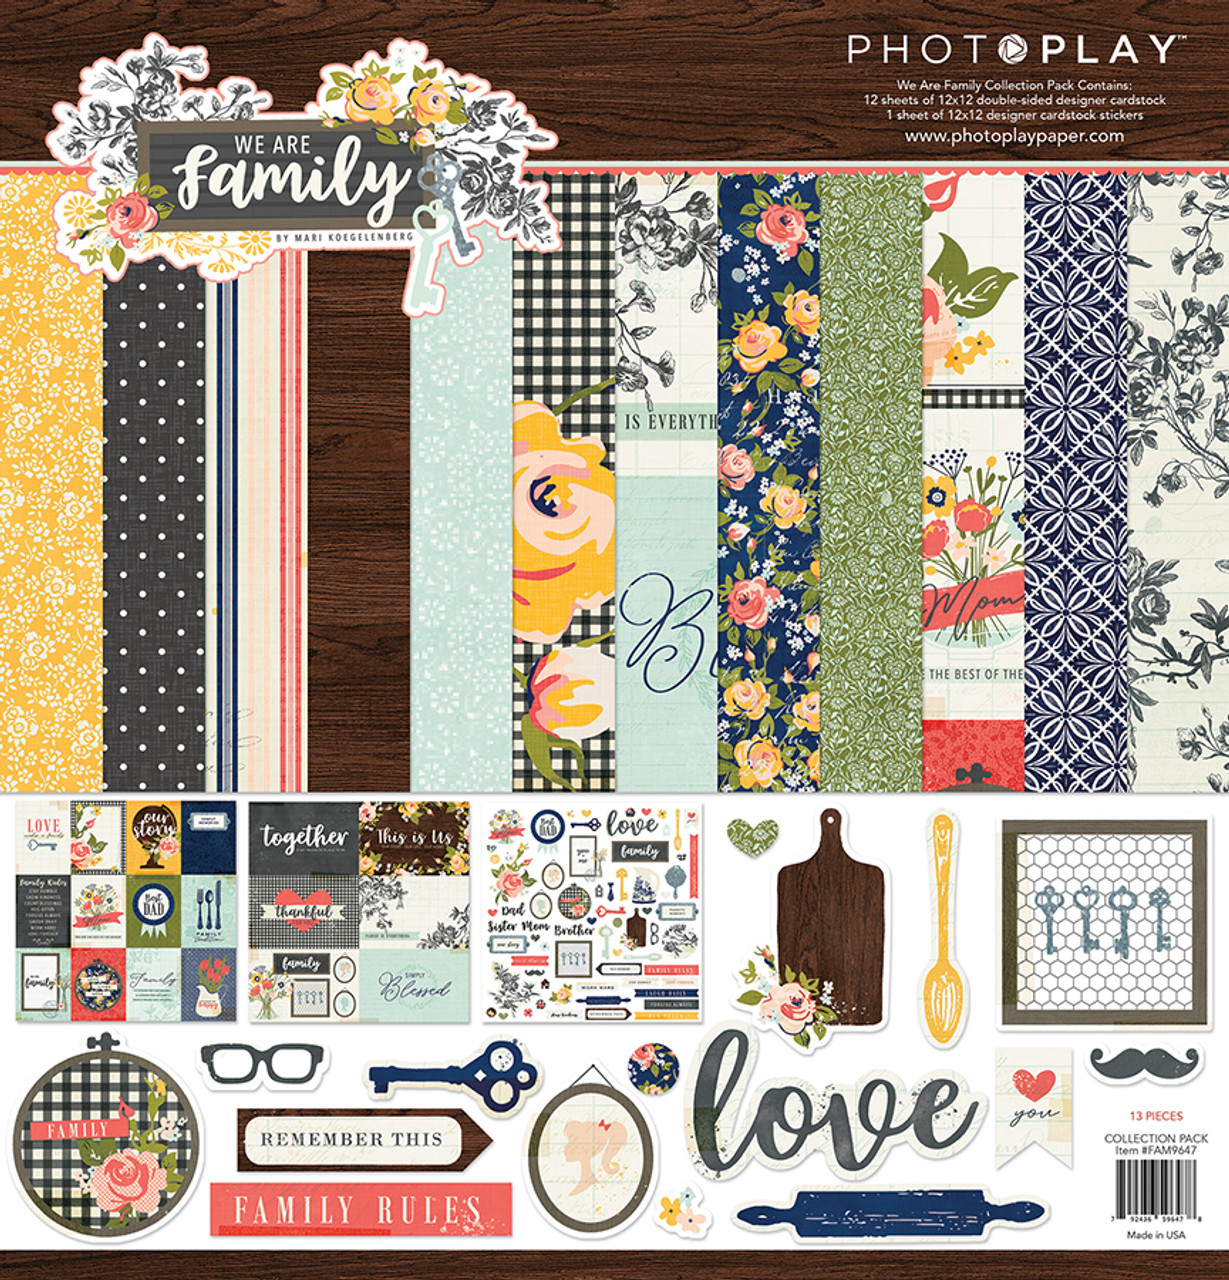 We Are Family Collection Pack by Photo Play Paper 13-Piece Collection-12 Papers, 1 Sticker